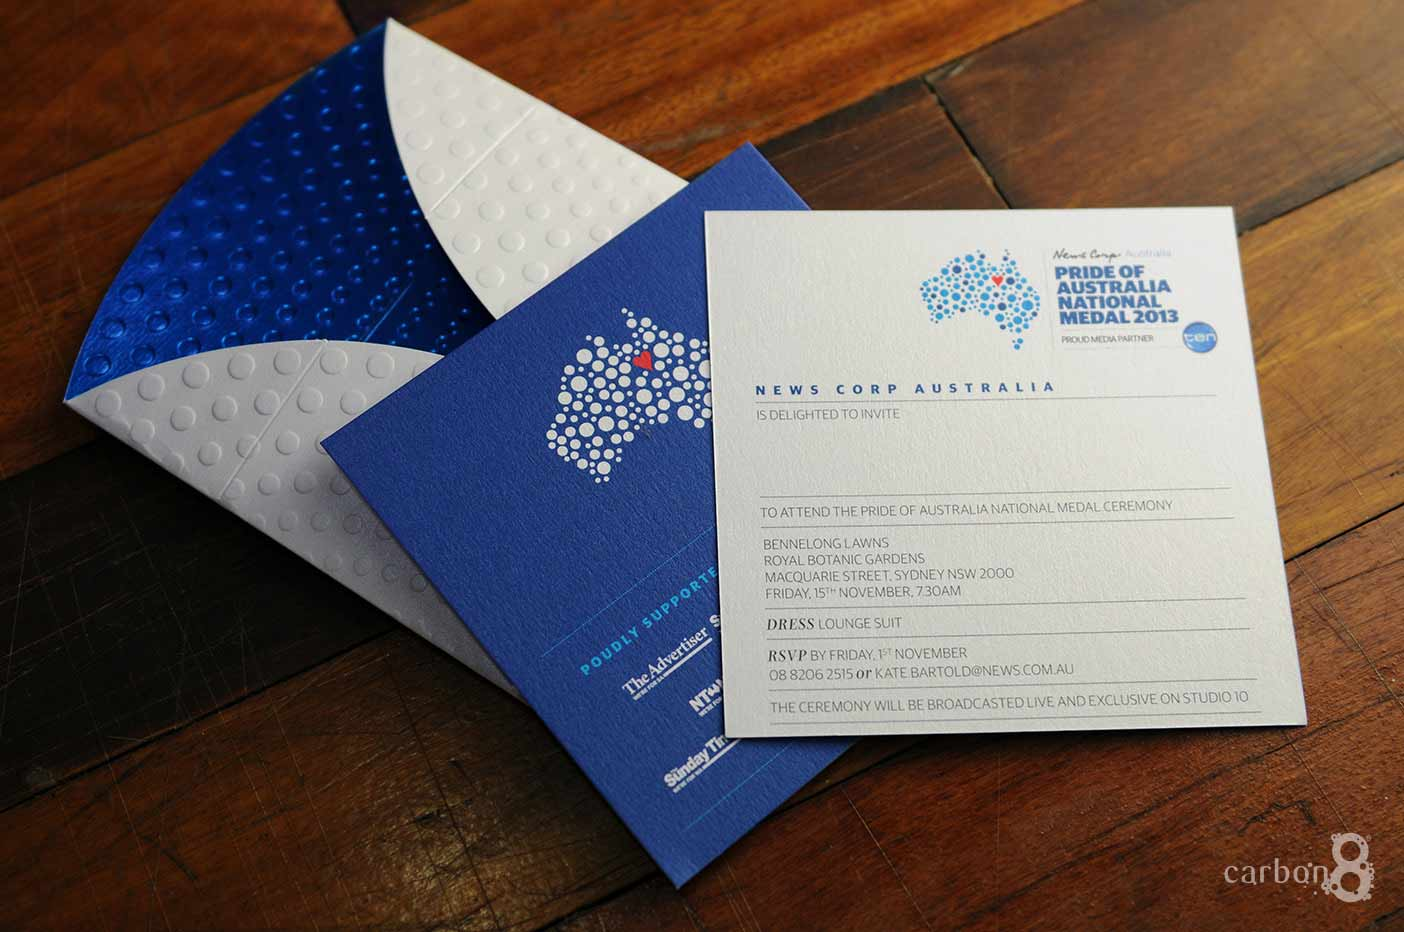 Invitation with die cut envelope for News Corp Australia